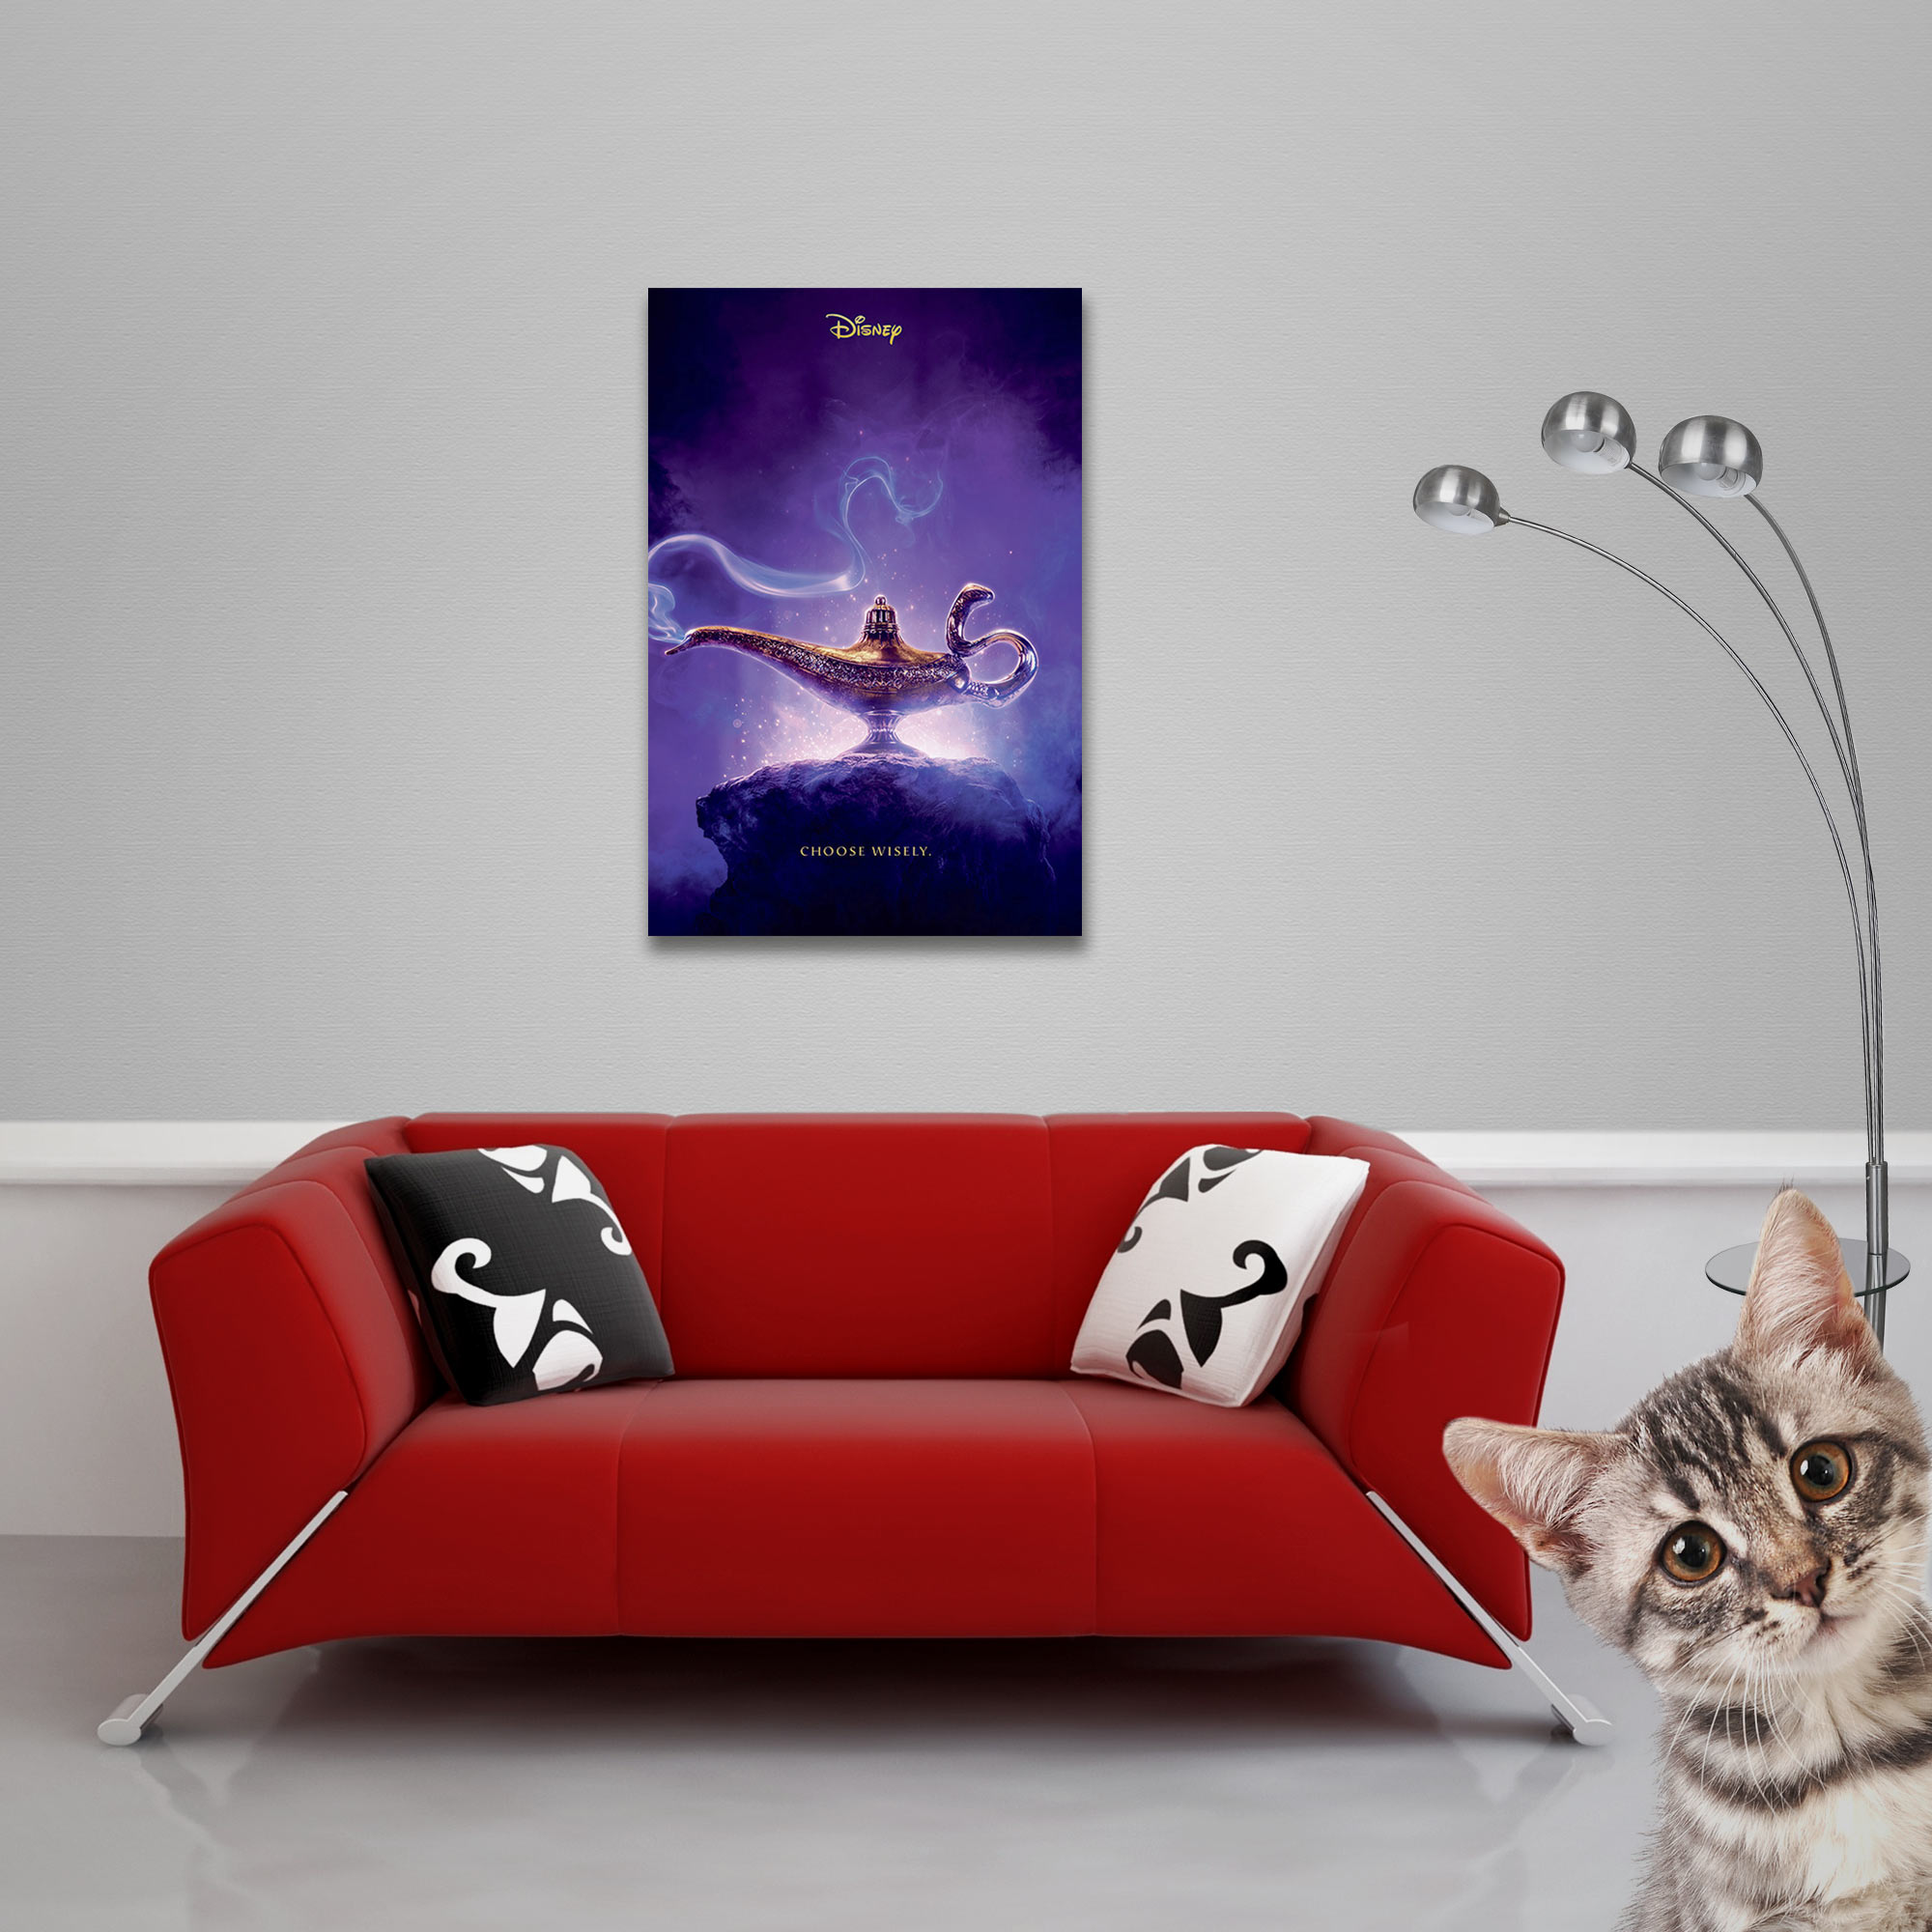 Aladdin - Poster - Movie - Choose Wisley Vorschau Sofa